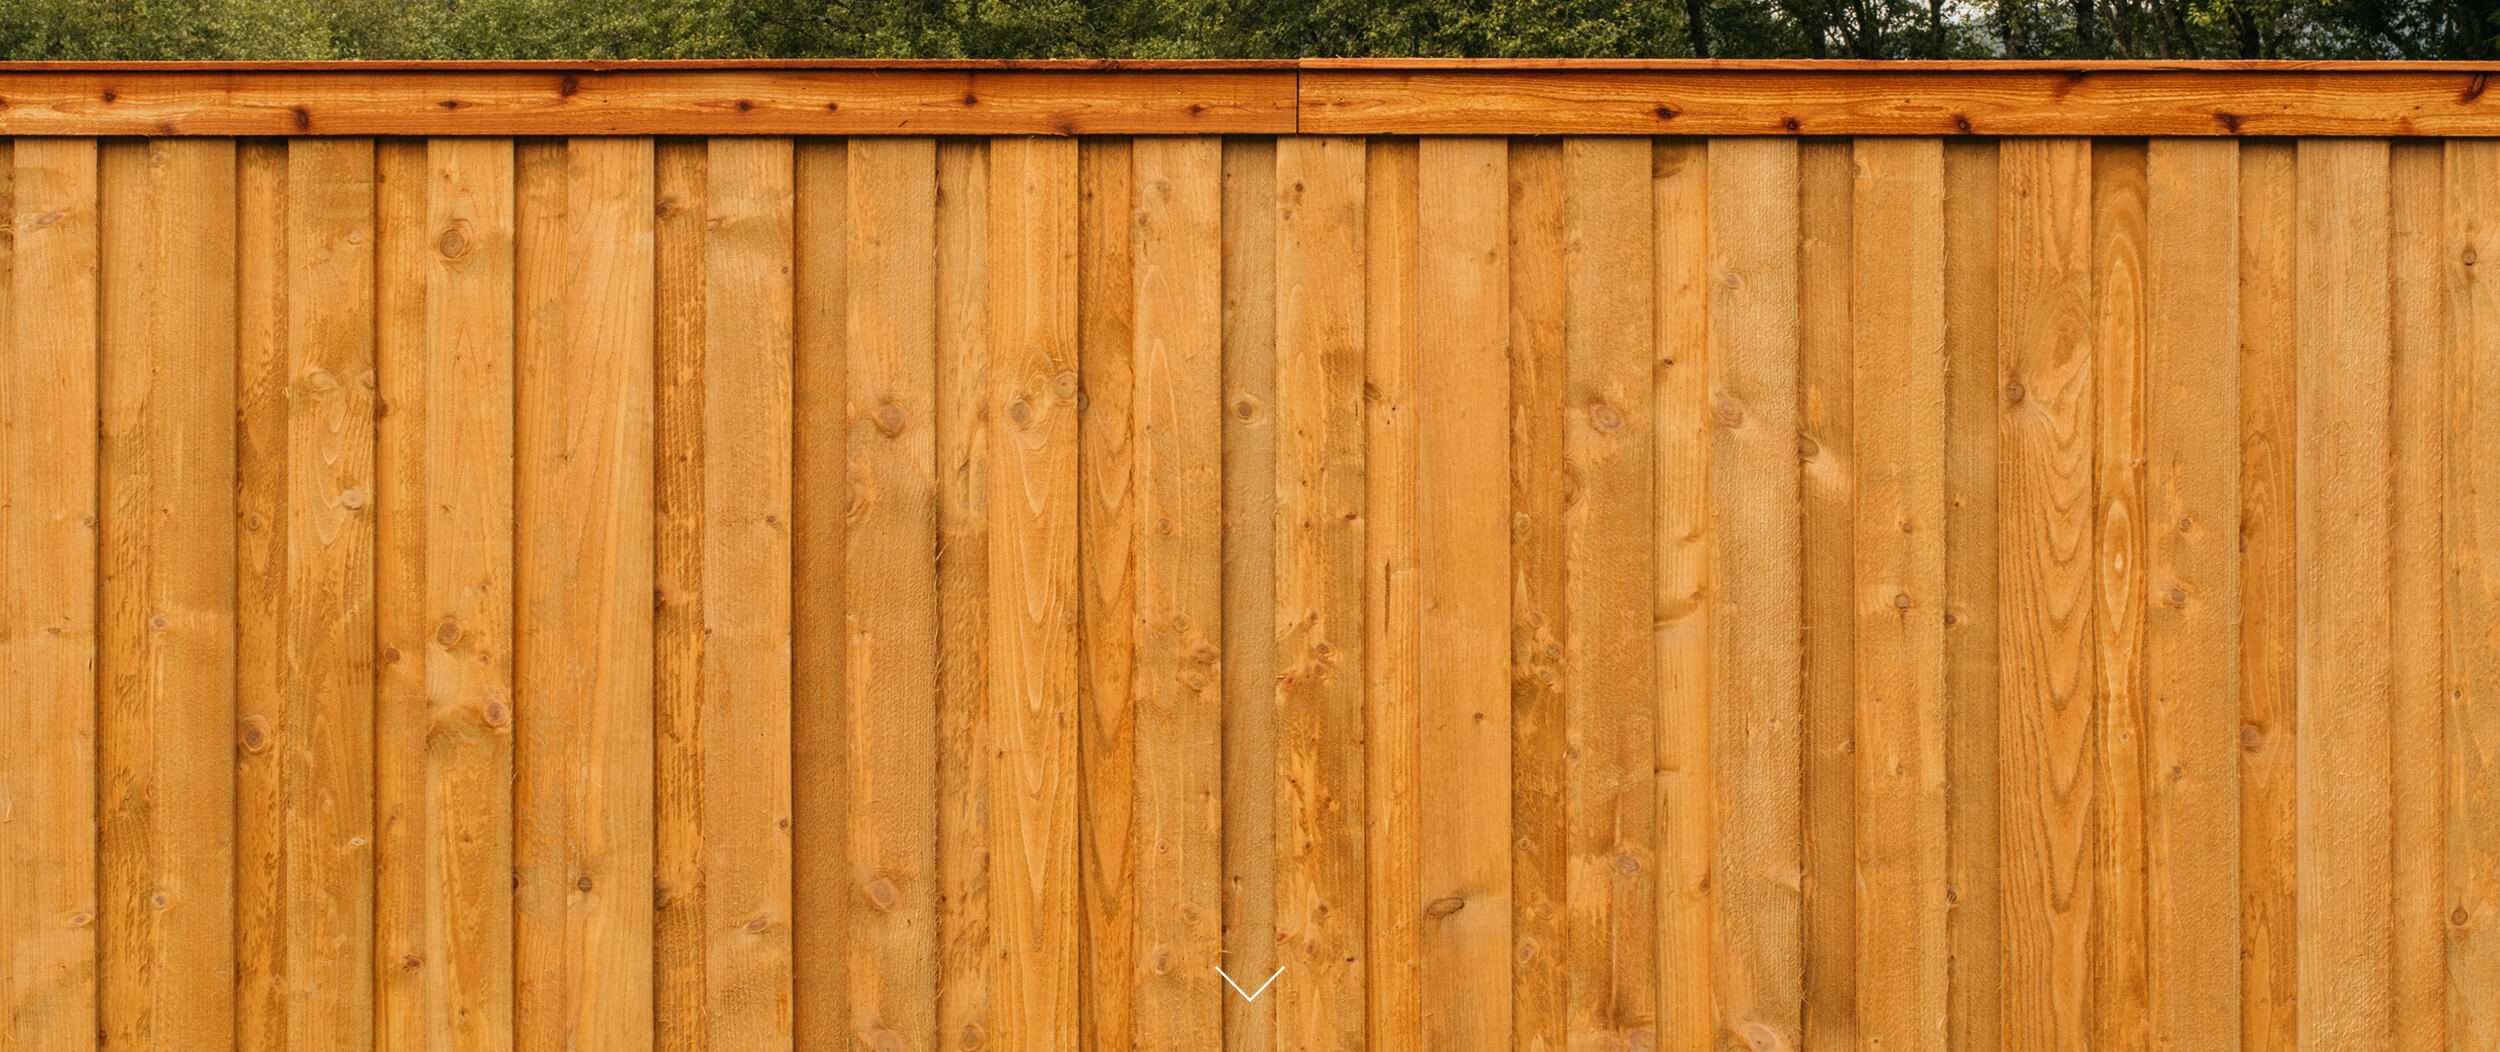 ALTAMIT - Durability has a beauty all its own. Altamit fencing makes a statement while standing up to the elements. Choose between two colors: Cedartone and Brown.